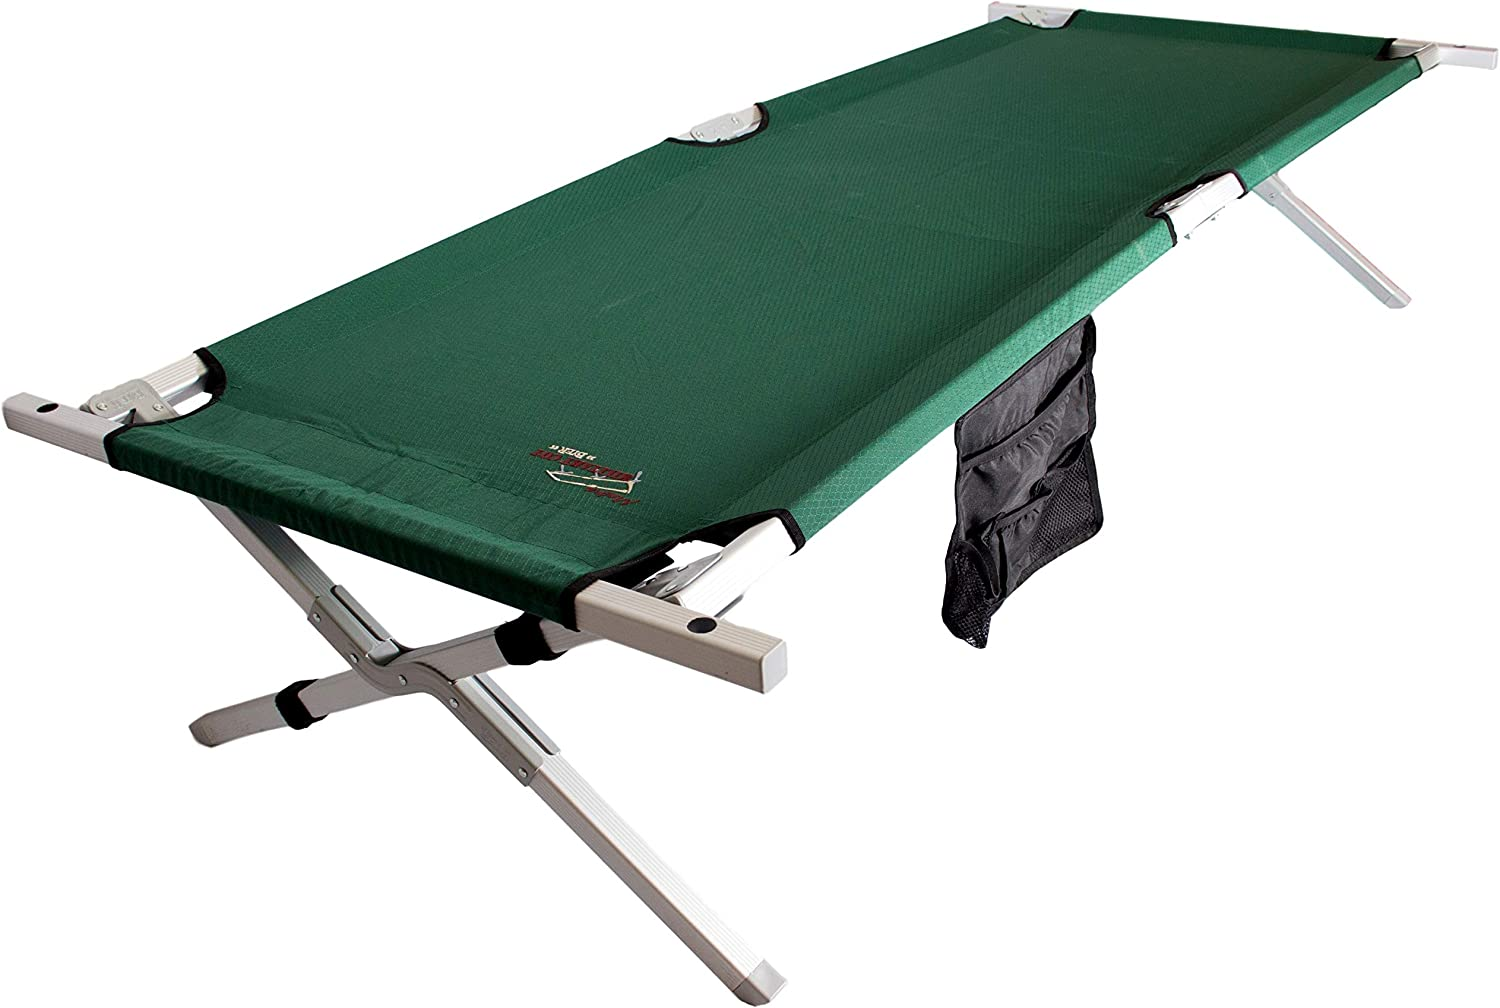 BYER OF MAINE Military Cot, Folding cot, Reinforced Aluminum Steel Frame, Extra Large Size, Holds 375lbs